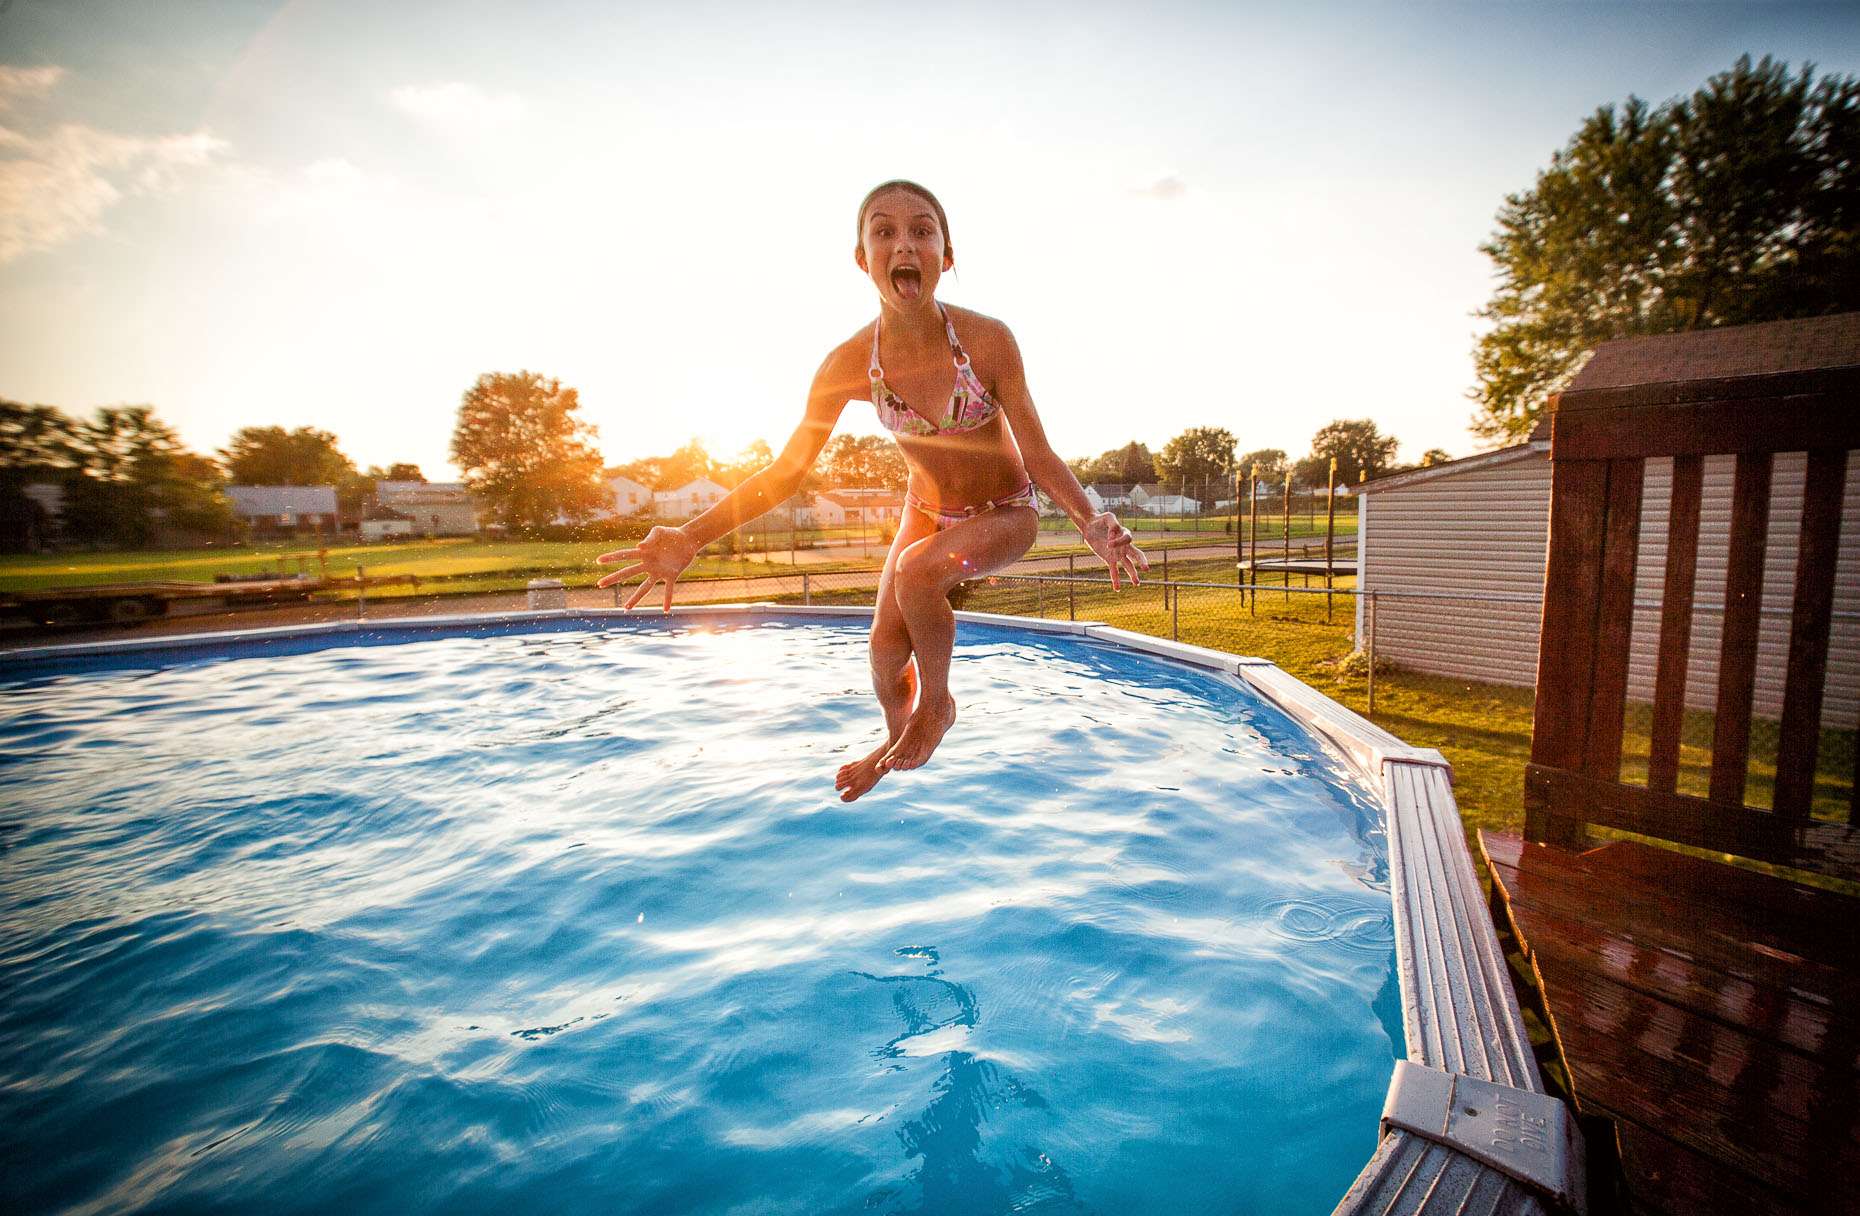 aaron-ingrao-Child-Swimming-pool-sunset-sunflair-playing-6